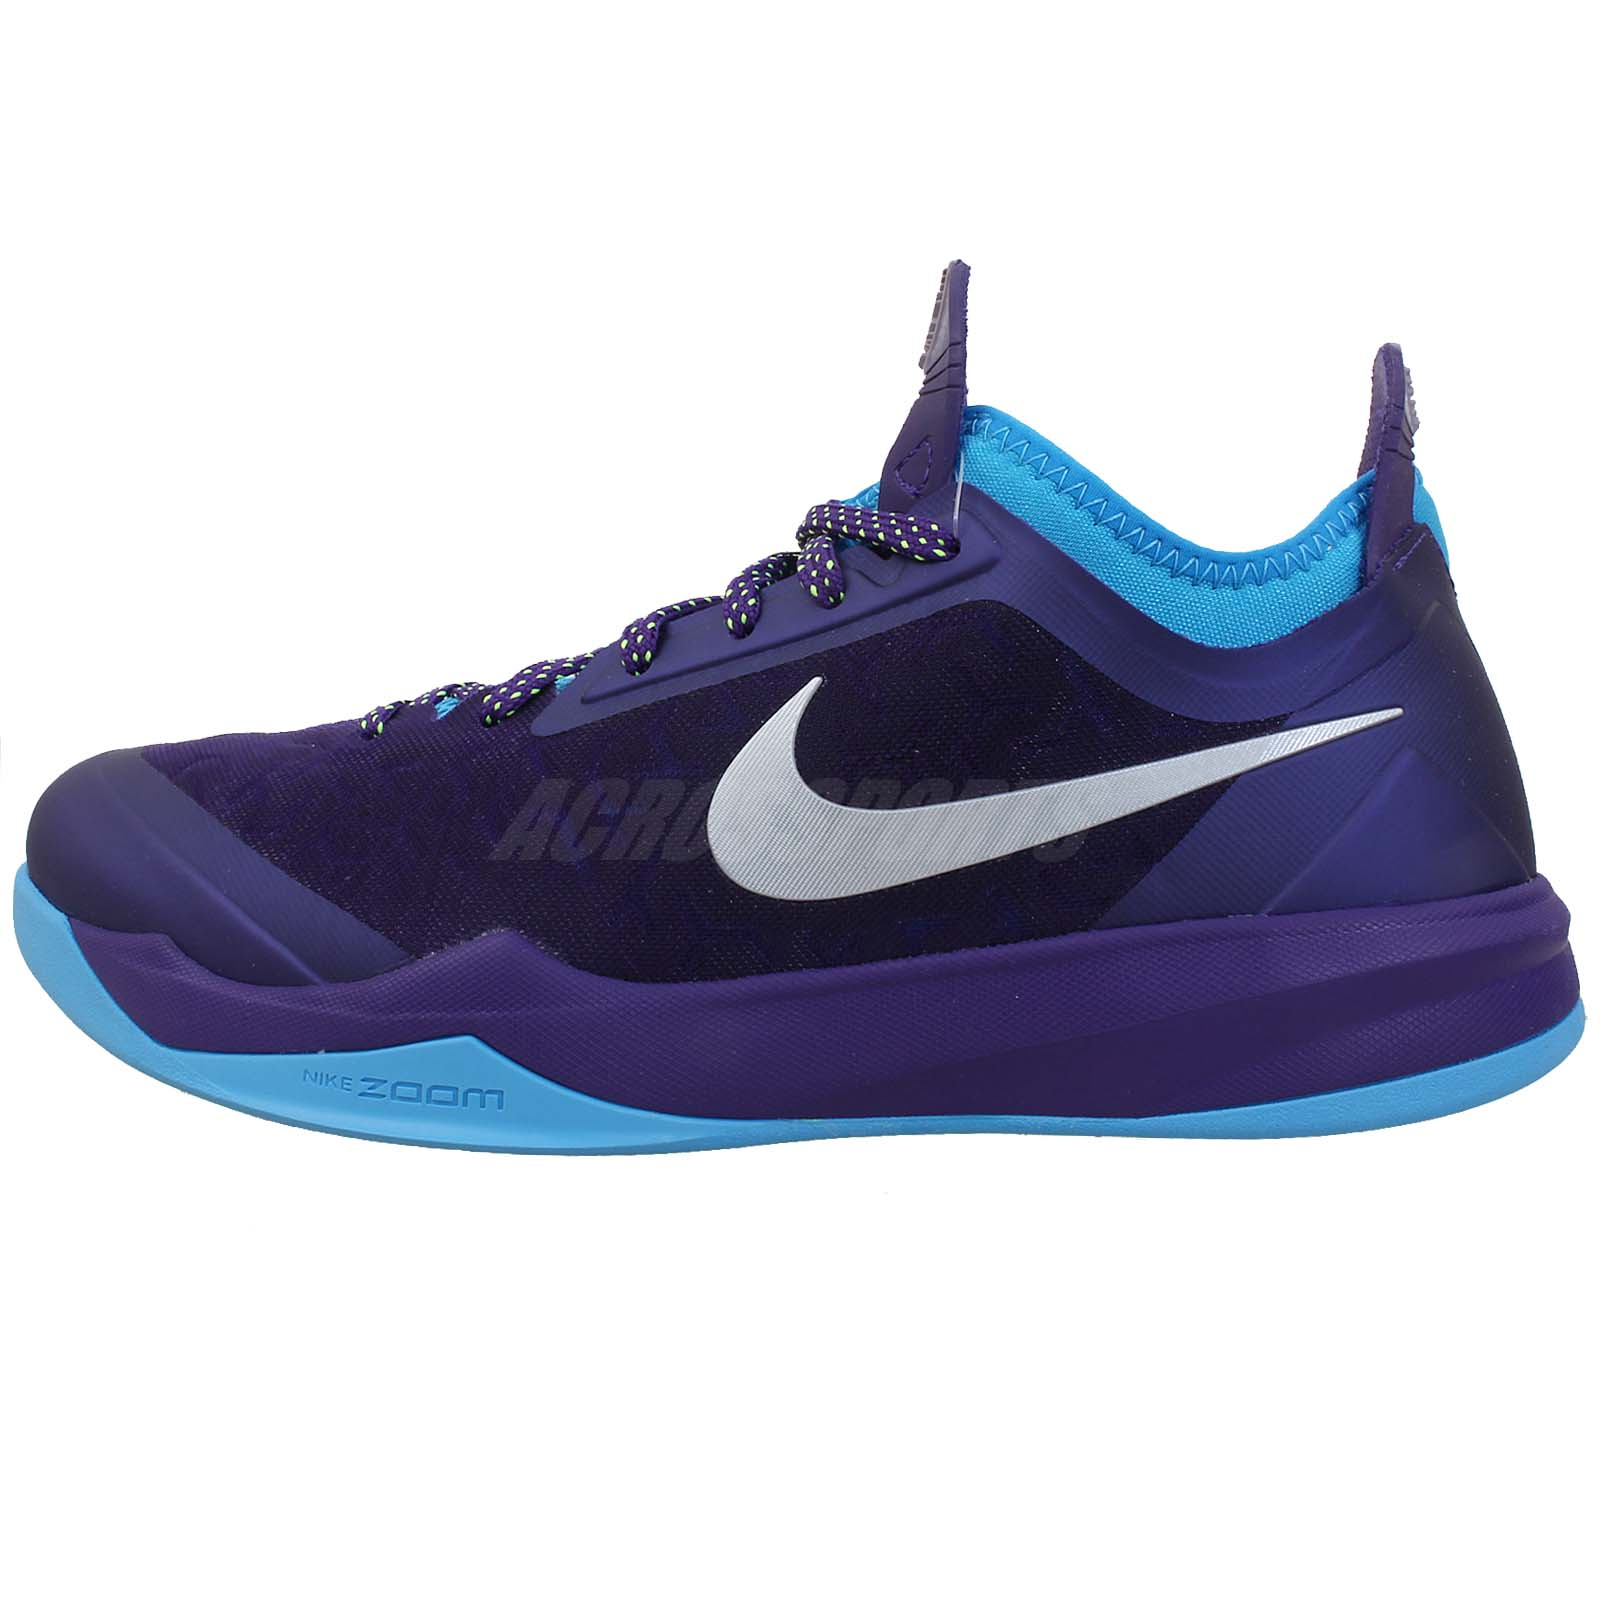 Nike Zoom Crusader Xdr James Harden Basketball Shoes